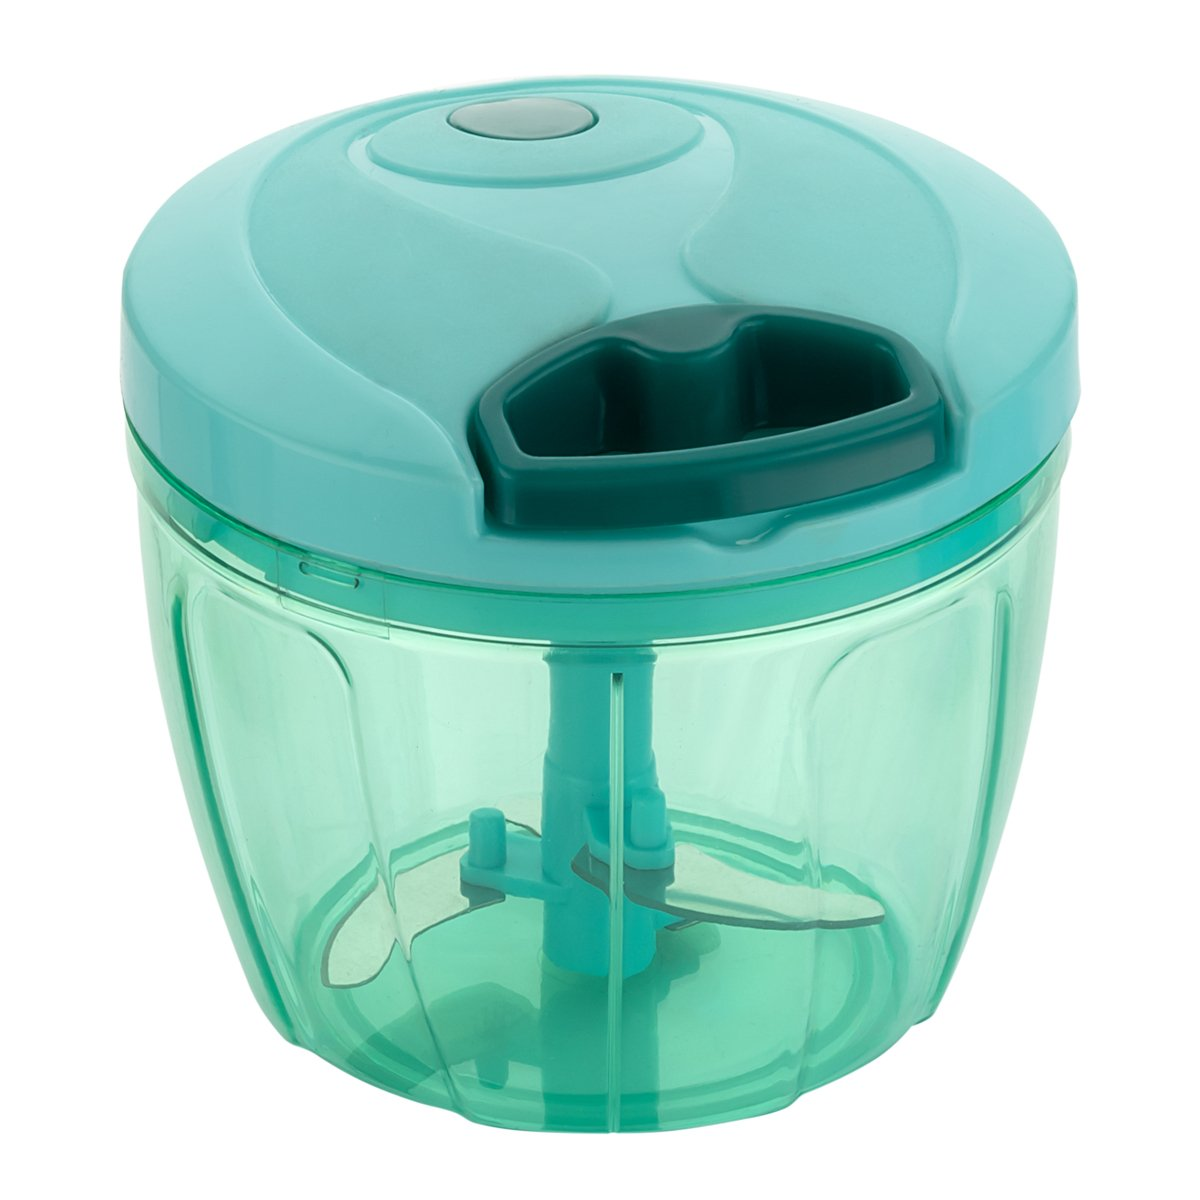 0101 Compact & Powerful Hand Held Vegetable Chopper (650 ml)